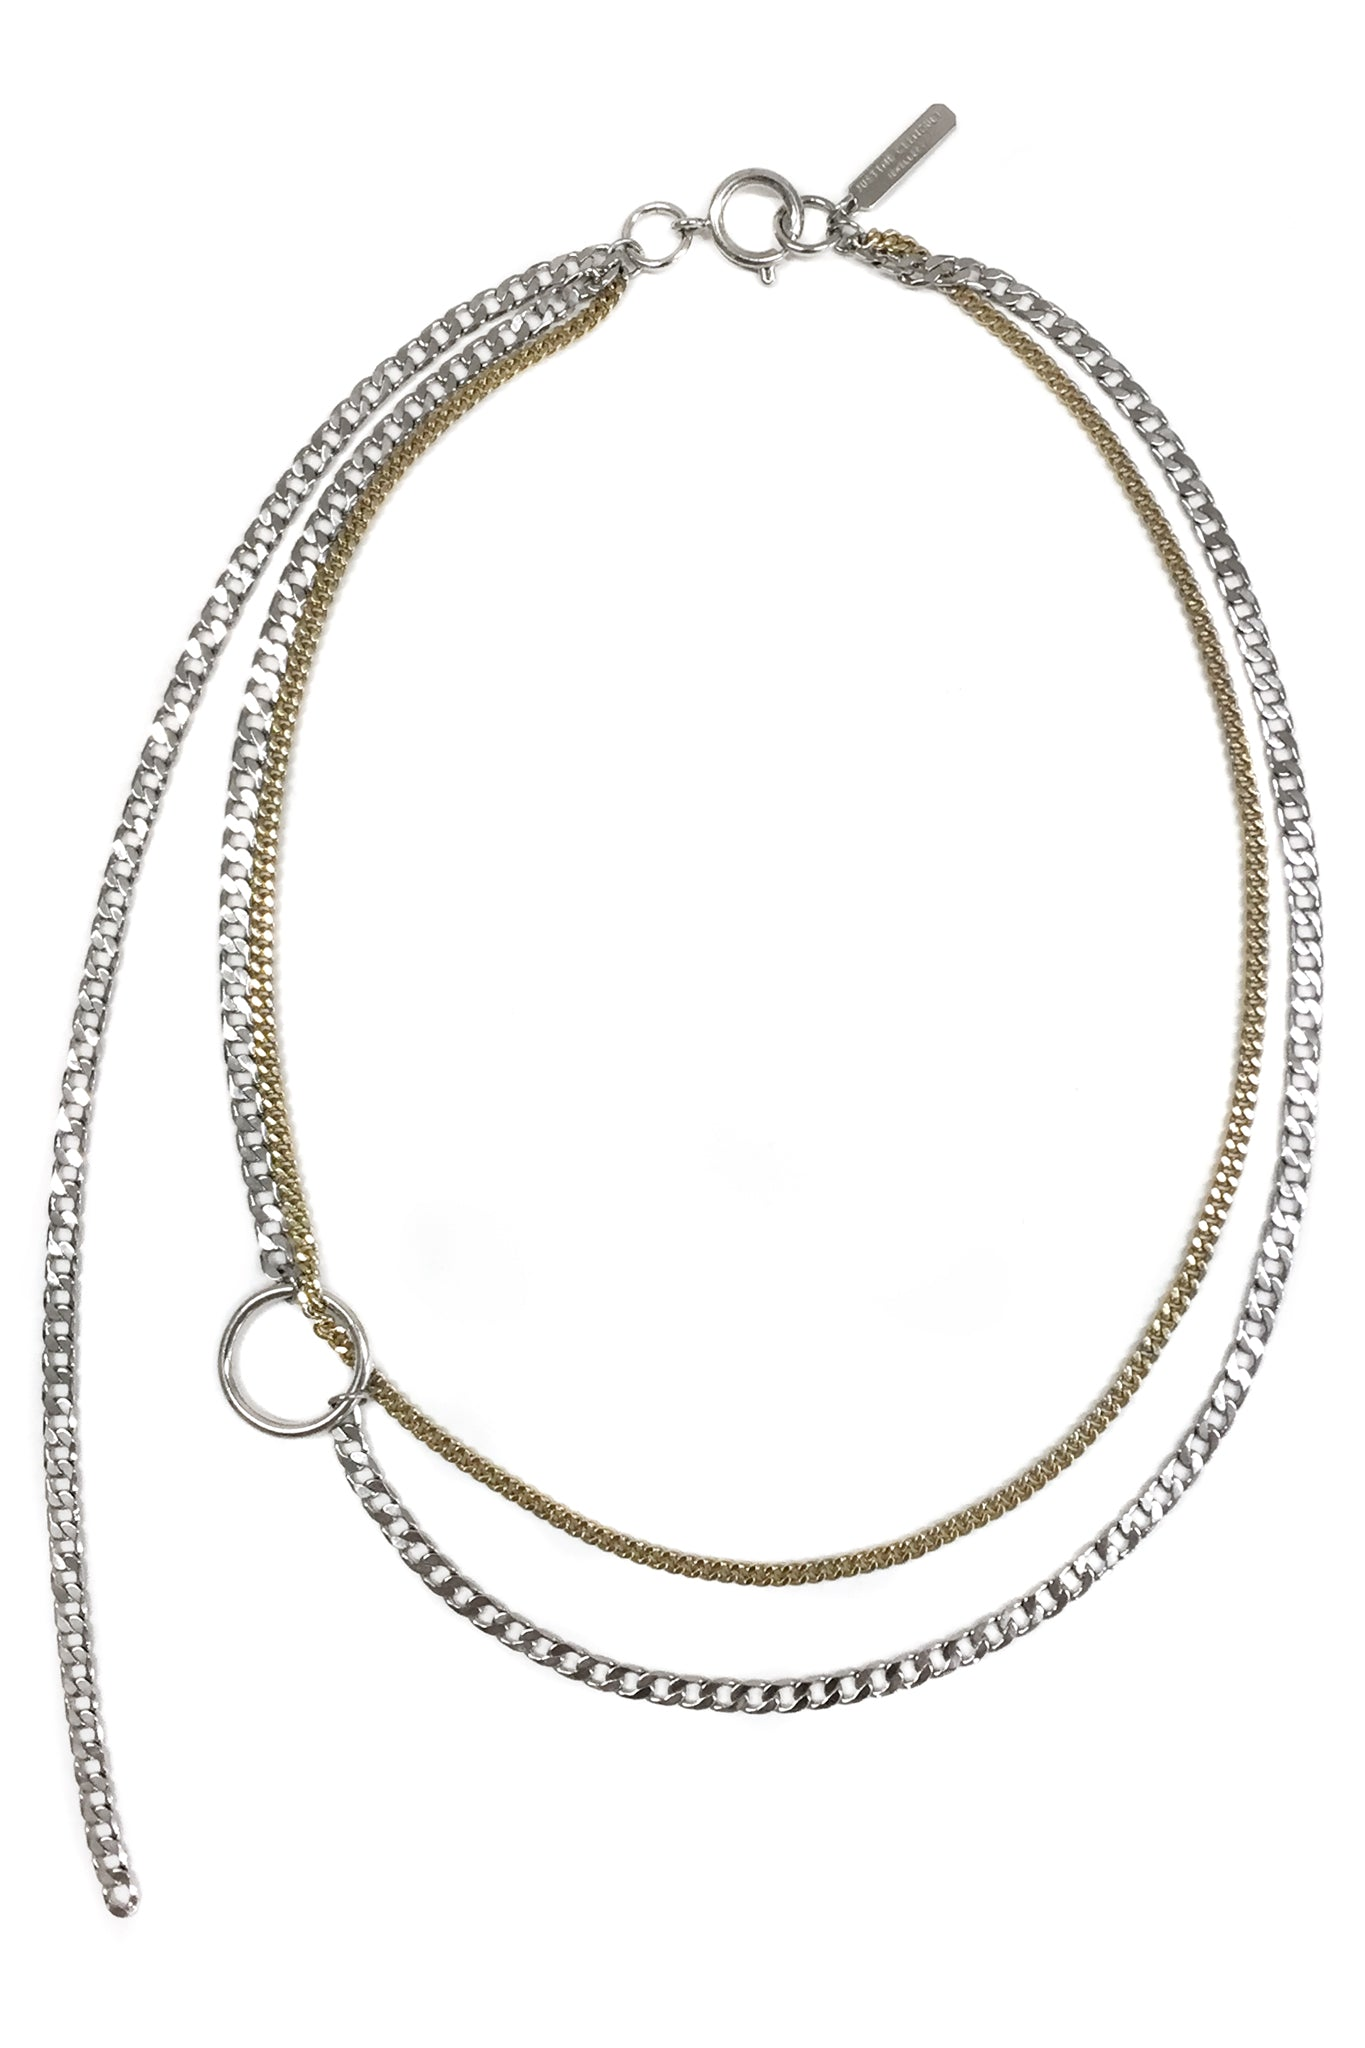 Justine Clenquet Jane Necklace